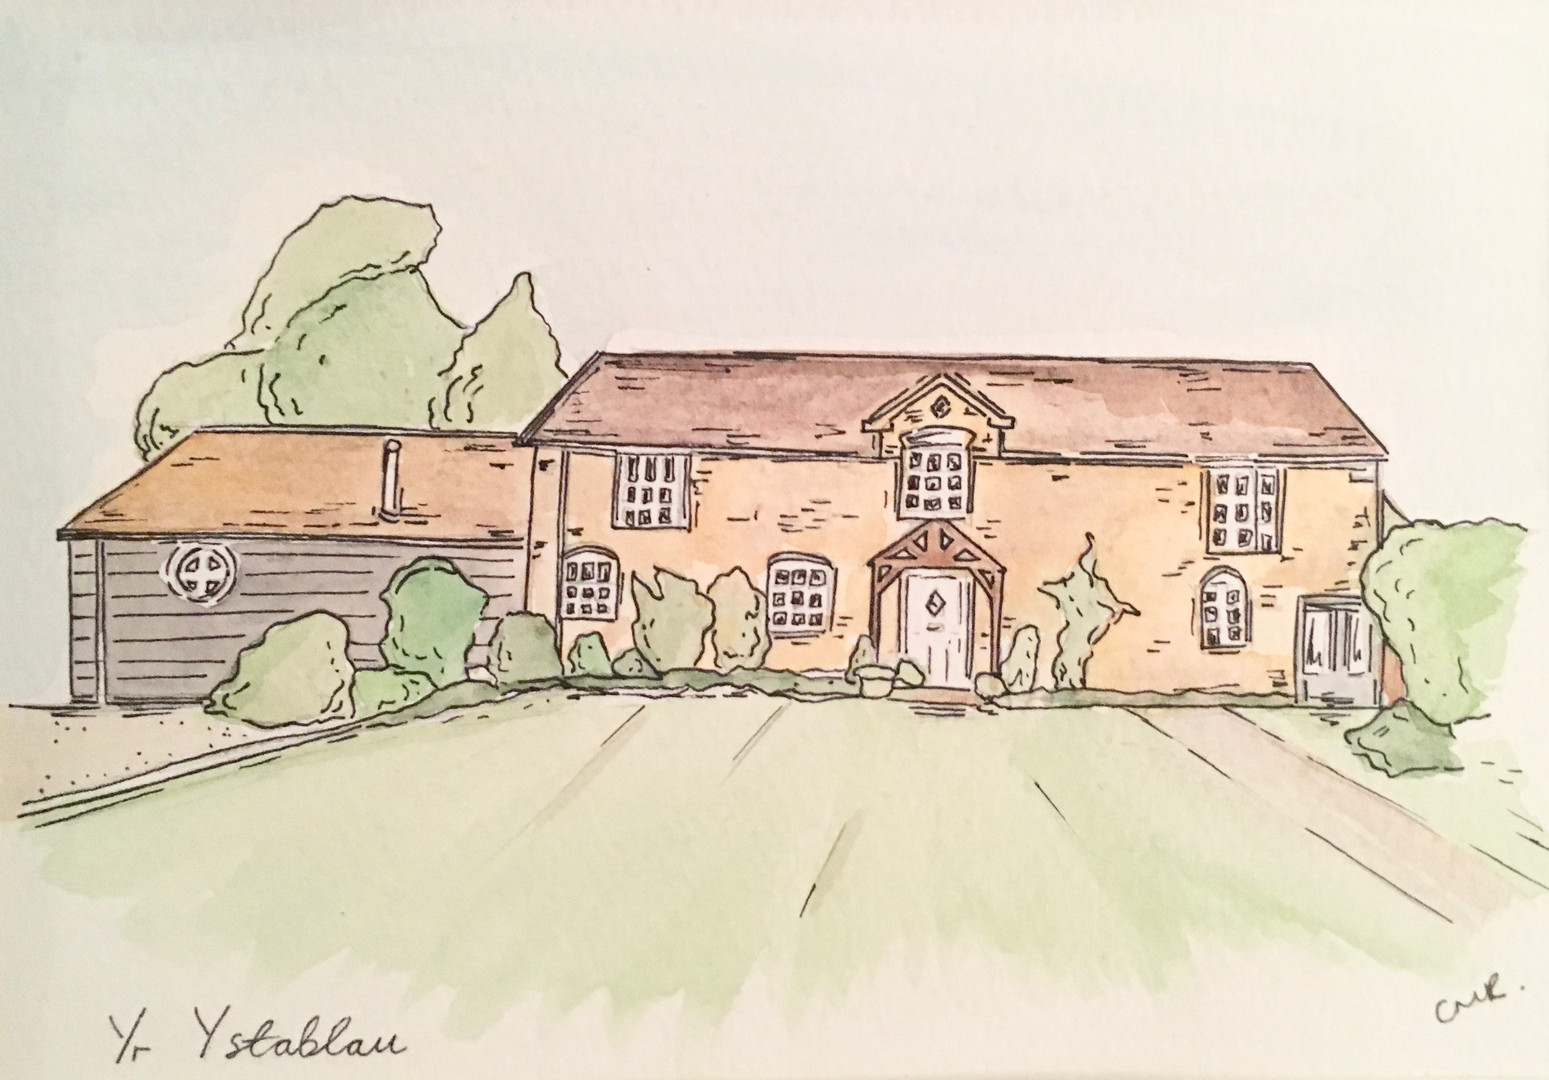 House illustration in water colour